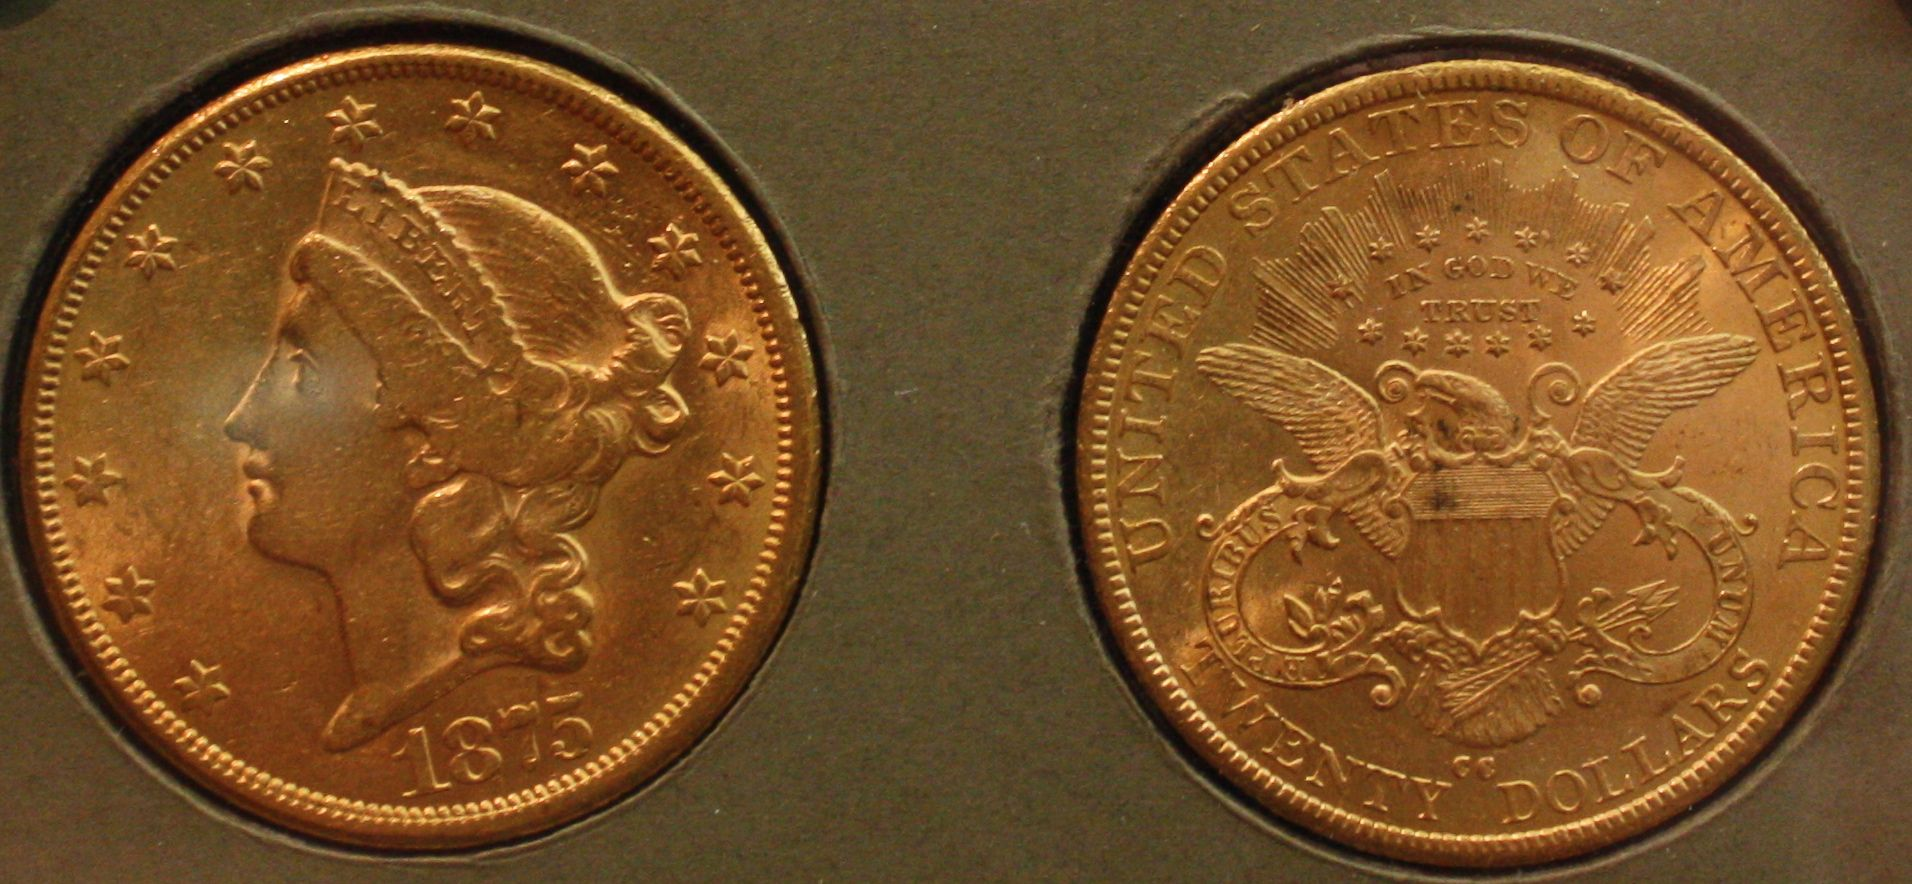 1875 Cc Double Eagle Struck At The Carson City Mint With Images Eagle Coin